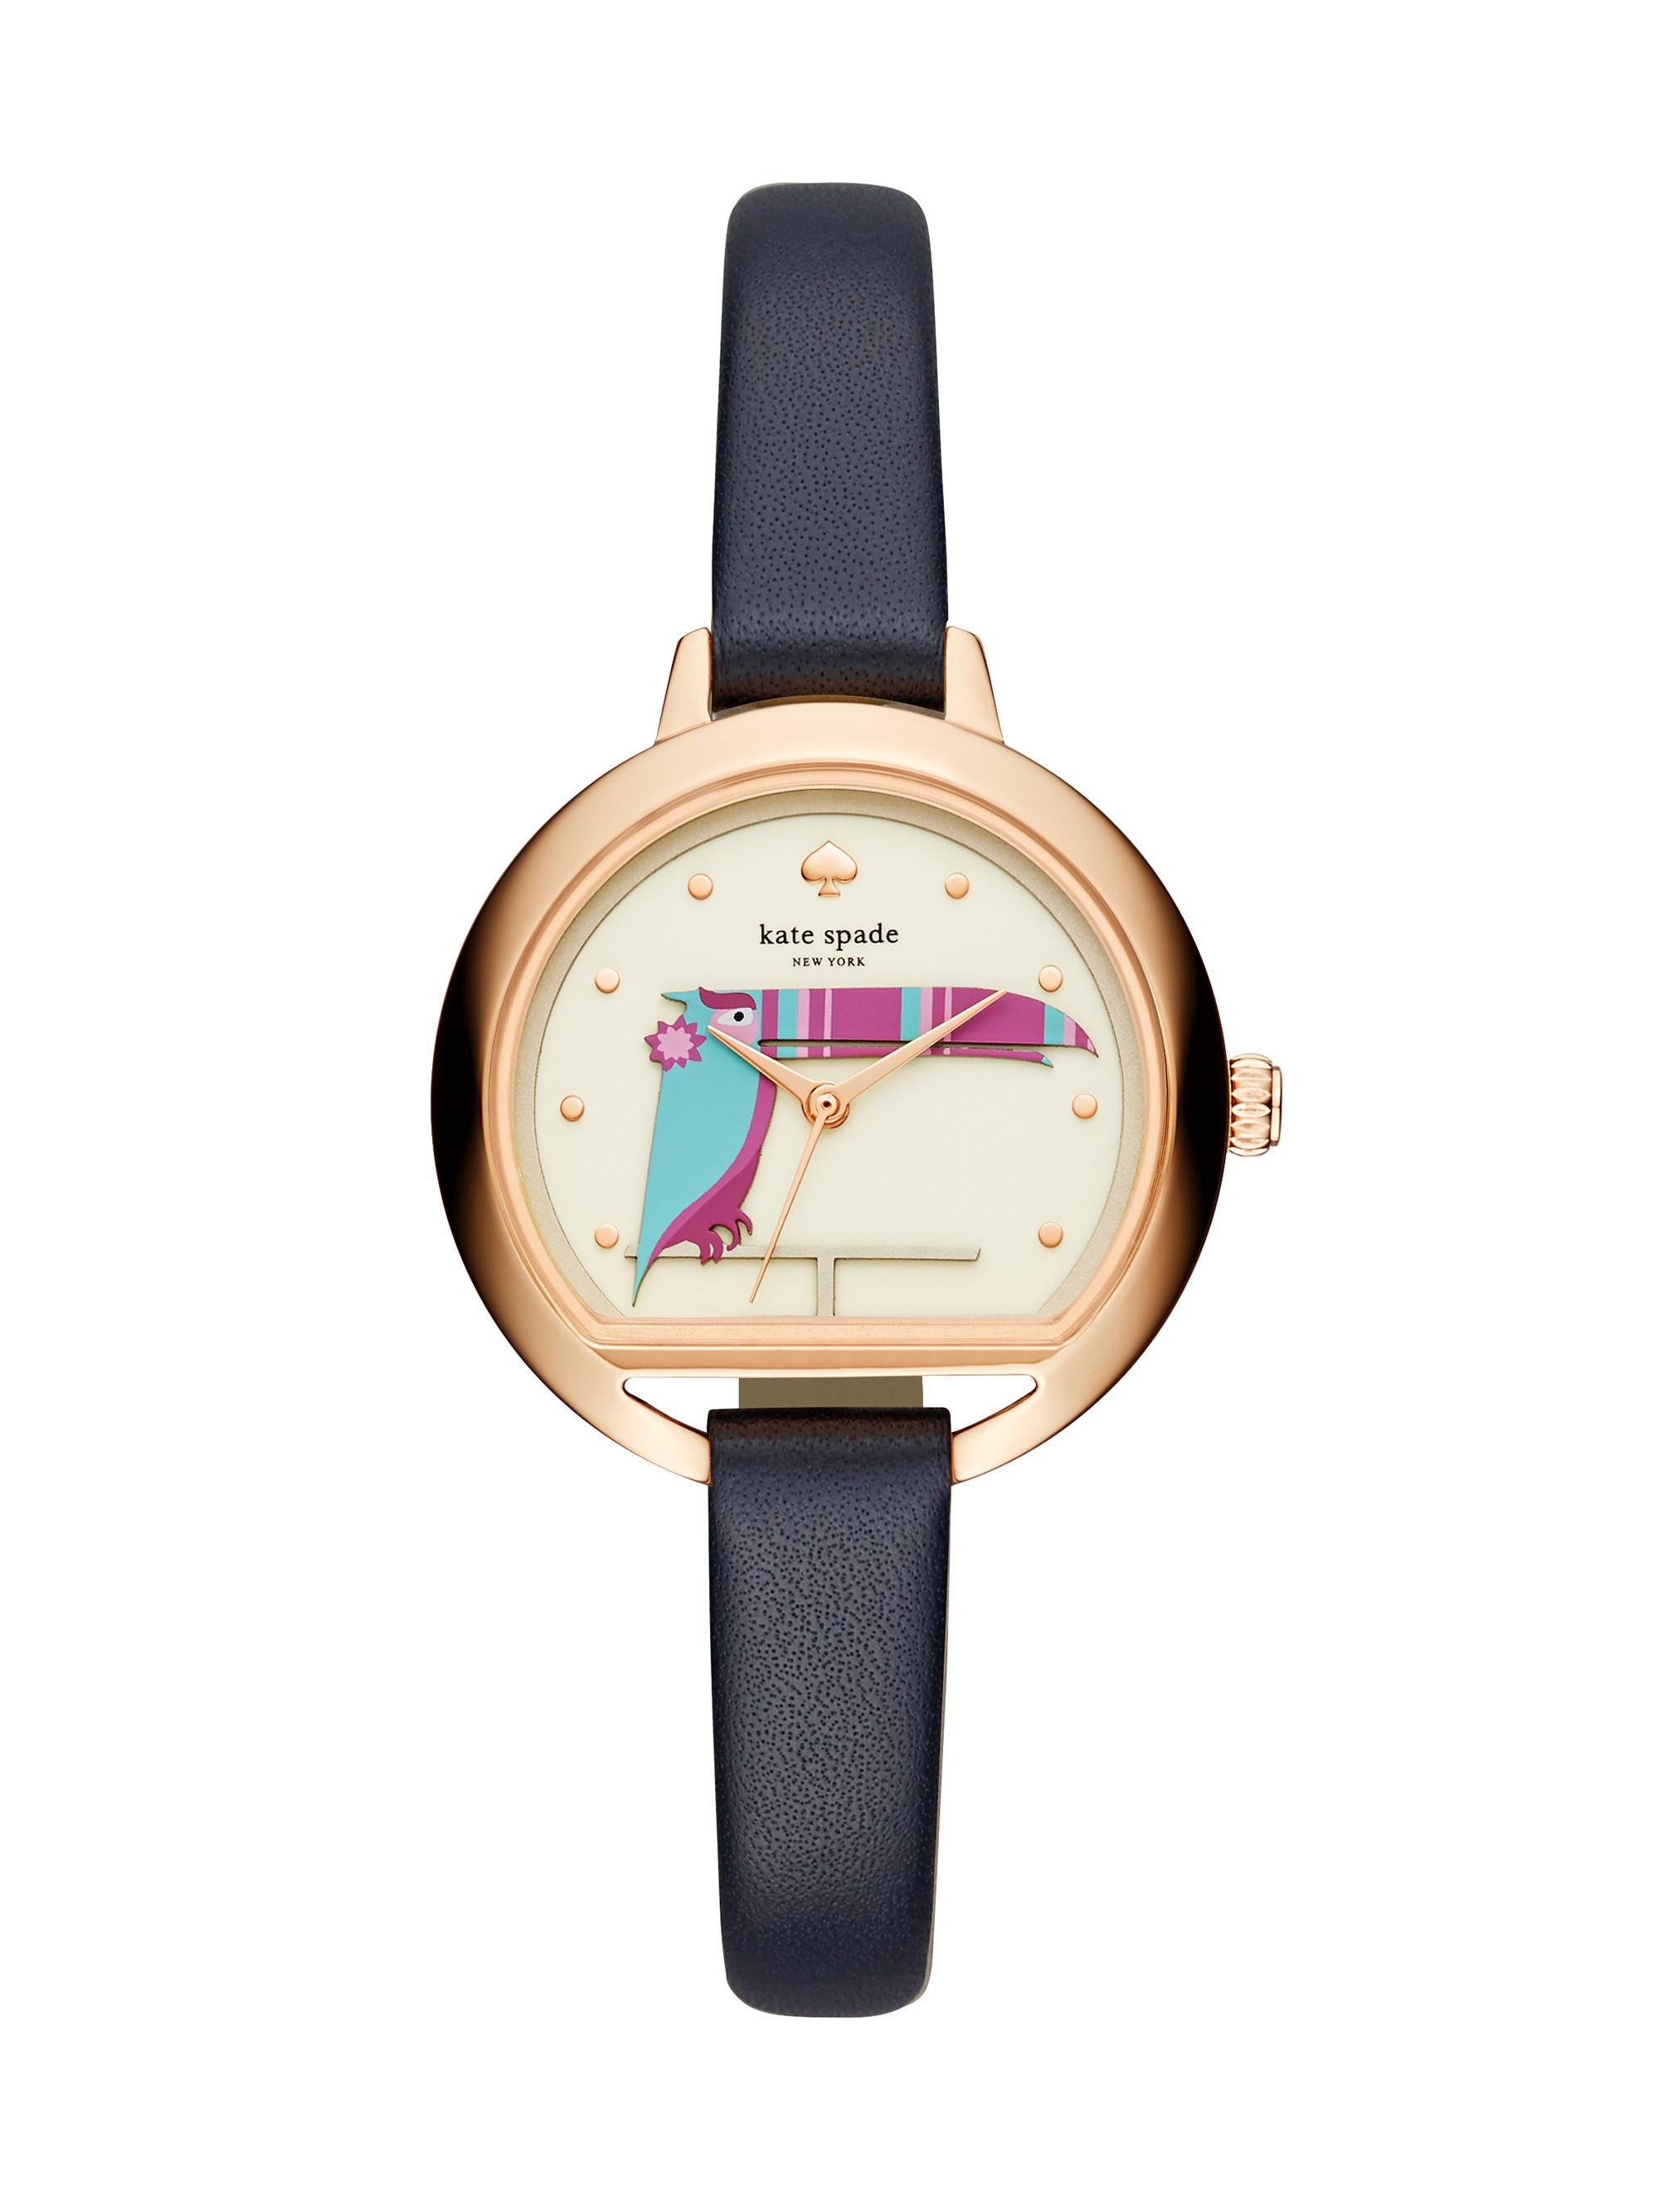 design watches daily and the bird header chanel watch learn